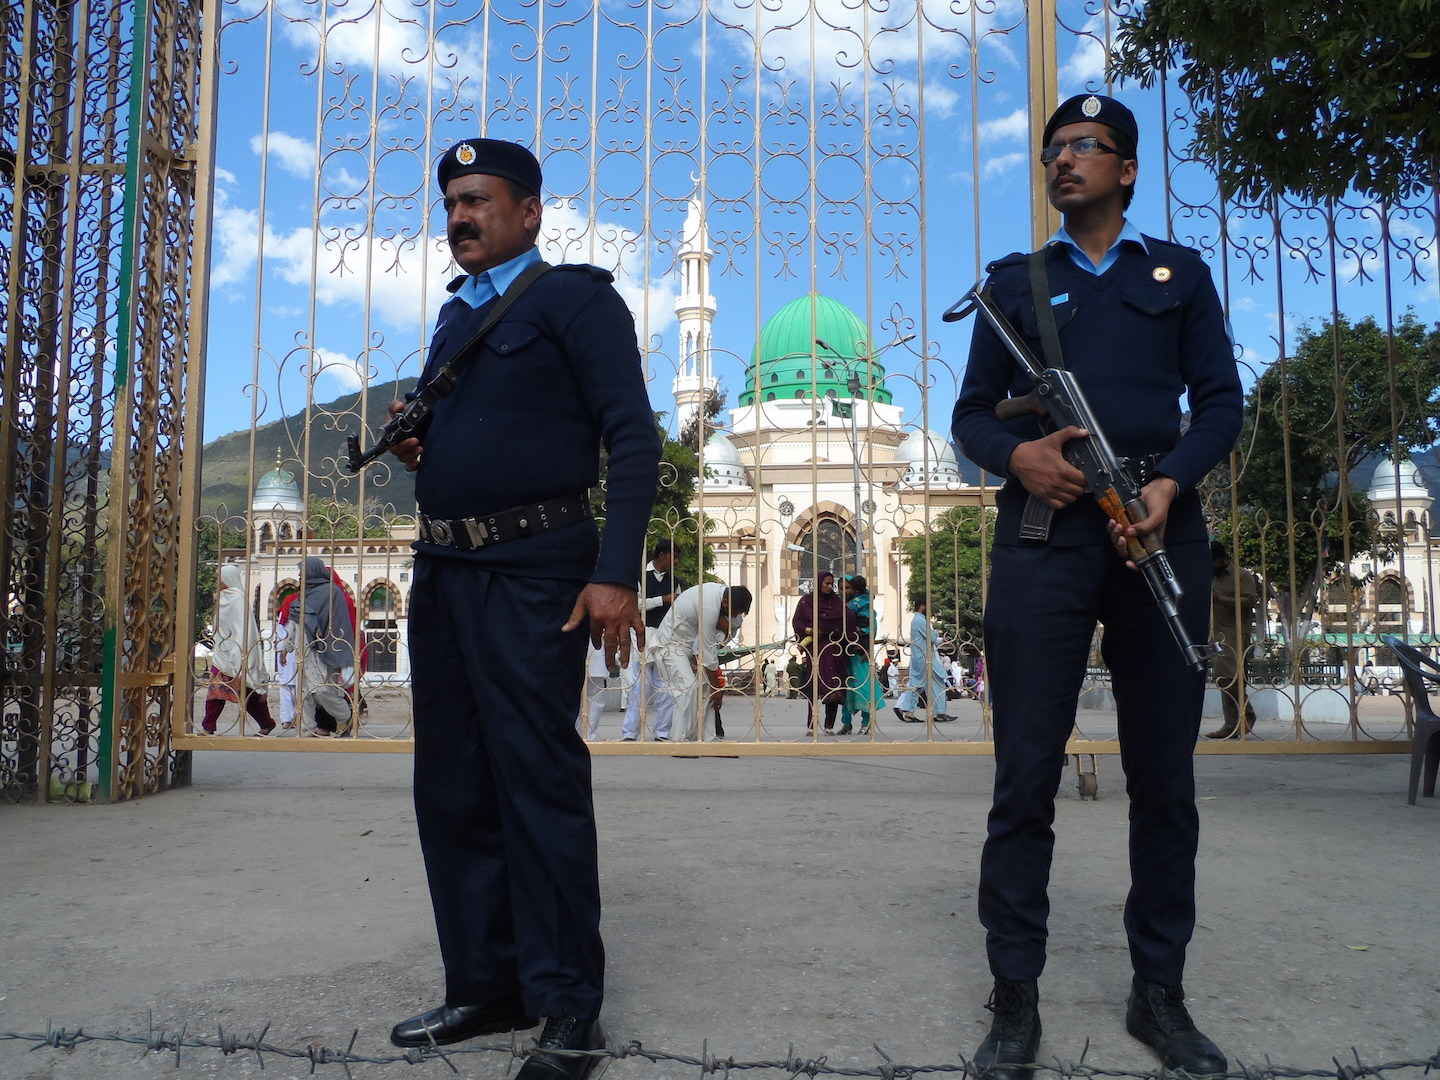 Police guard the Bari Imam Sufi shrine in Islamabad